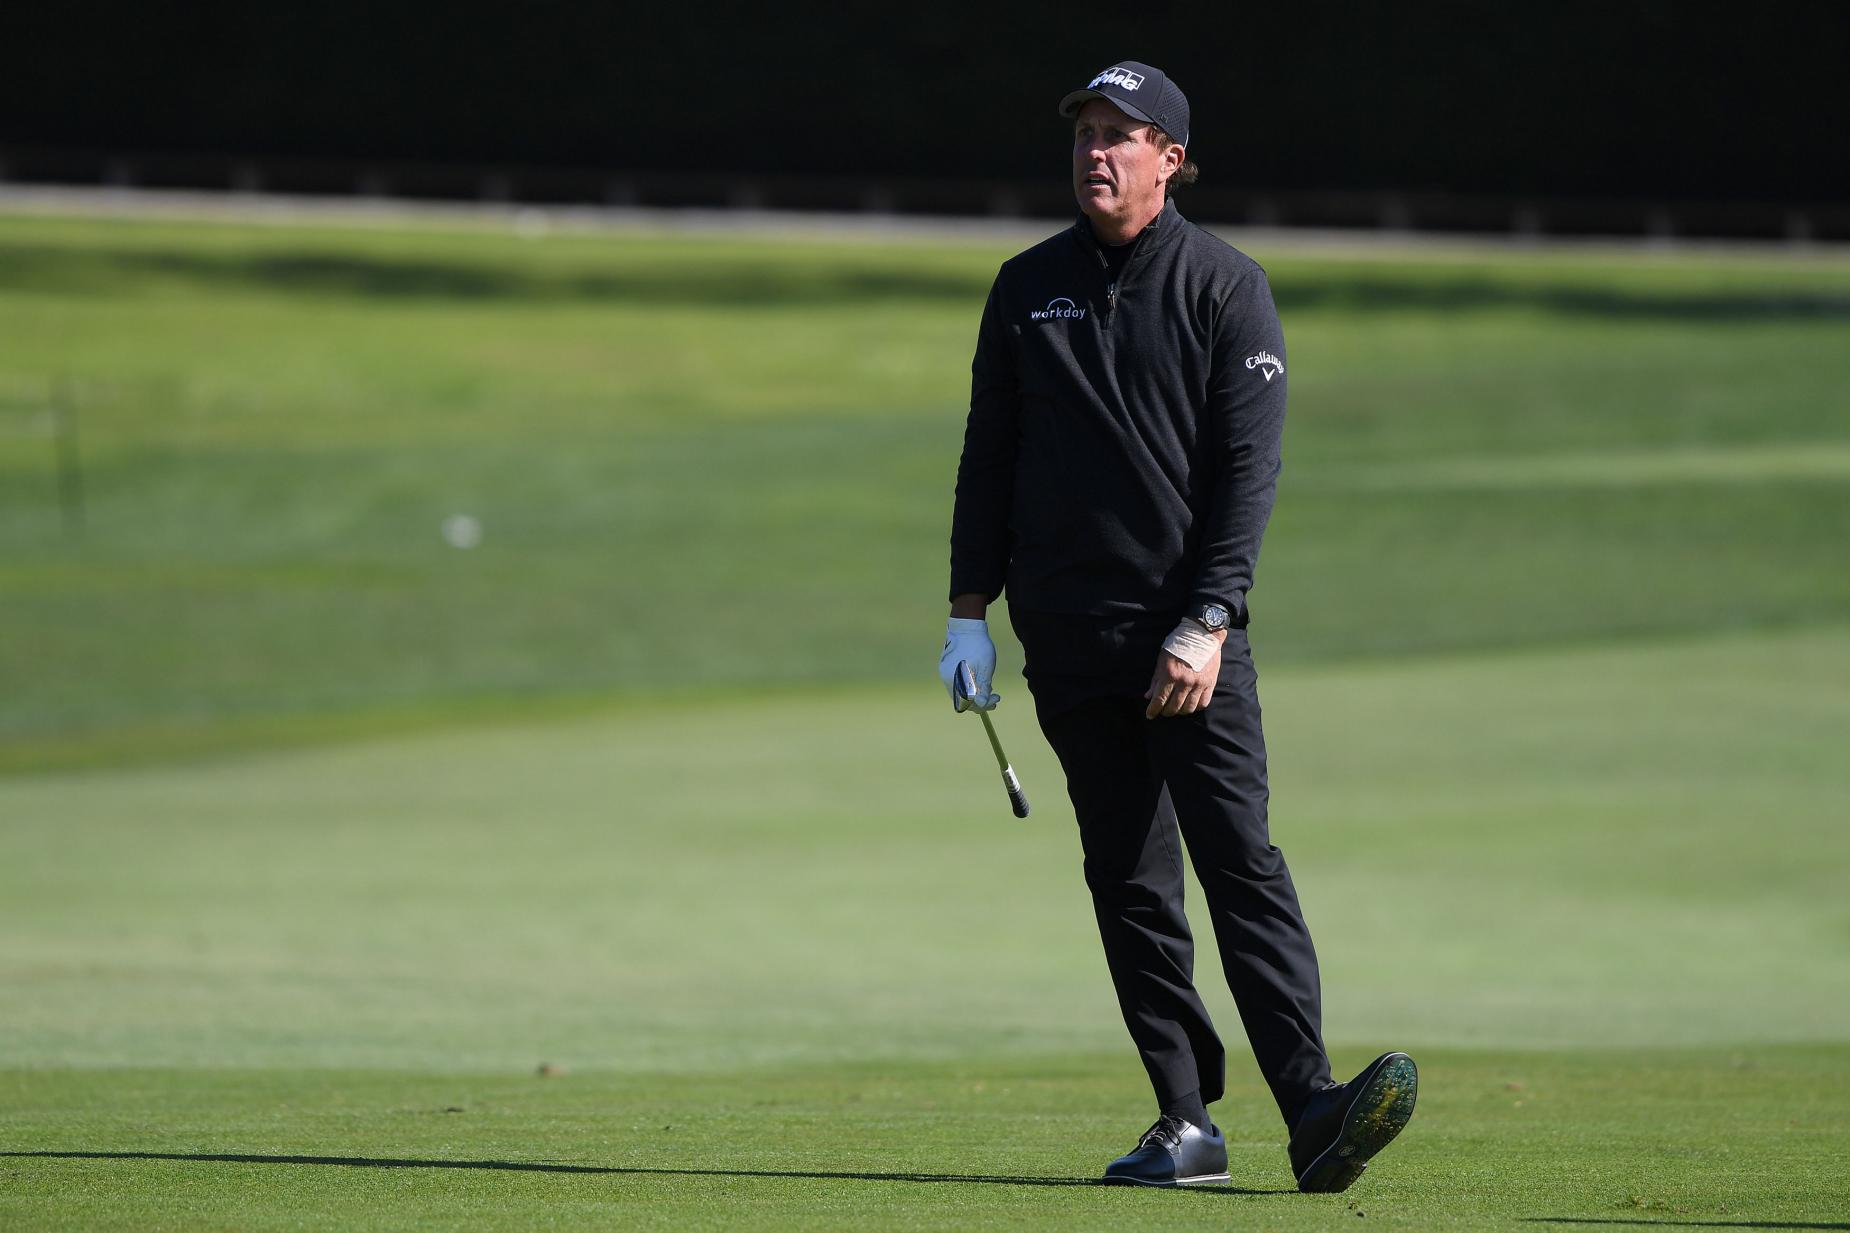 phil-mickelson-att-pebble-beach-2020-sunday.jpg